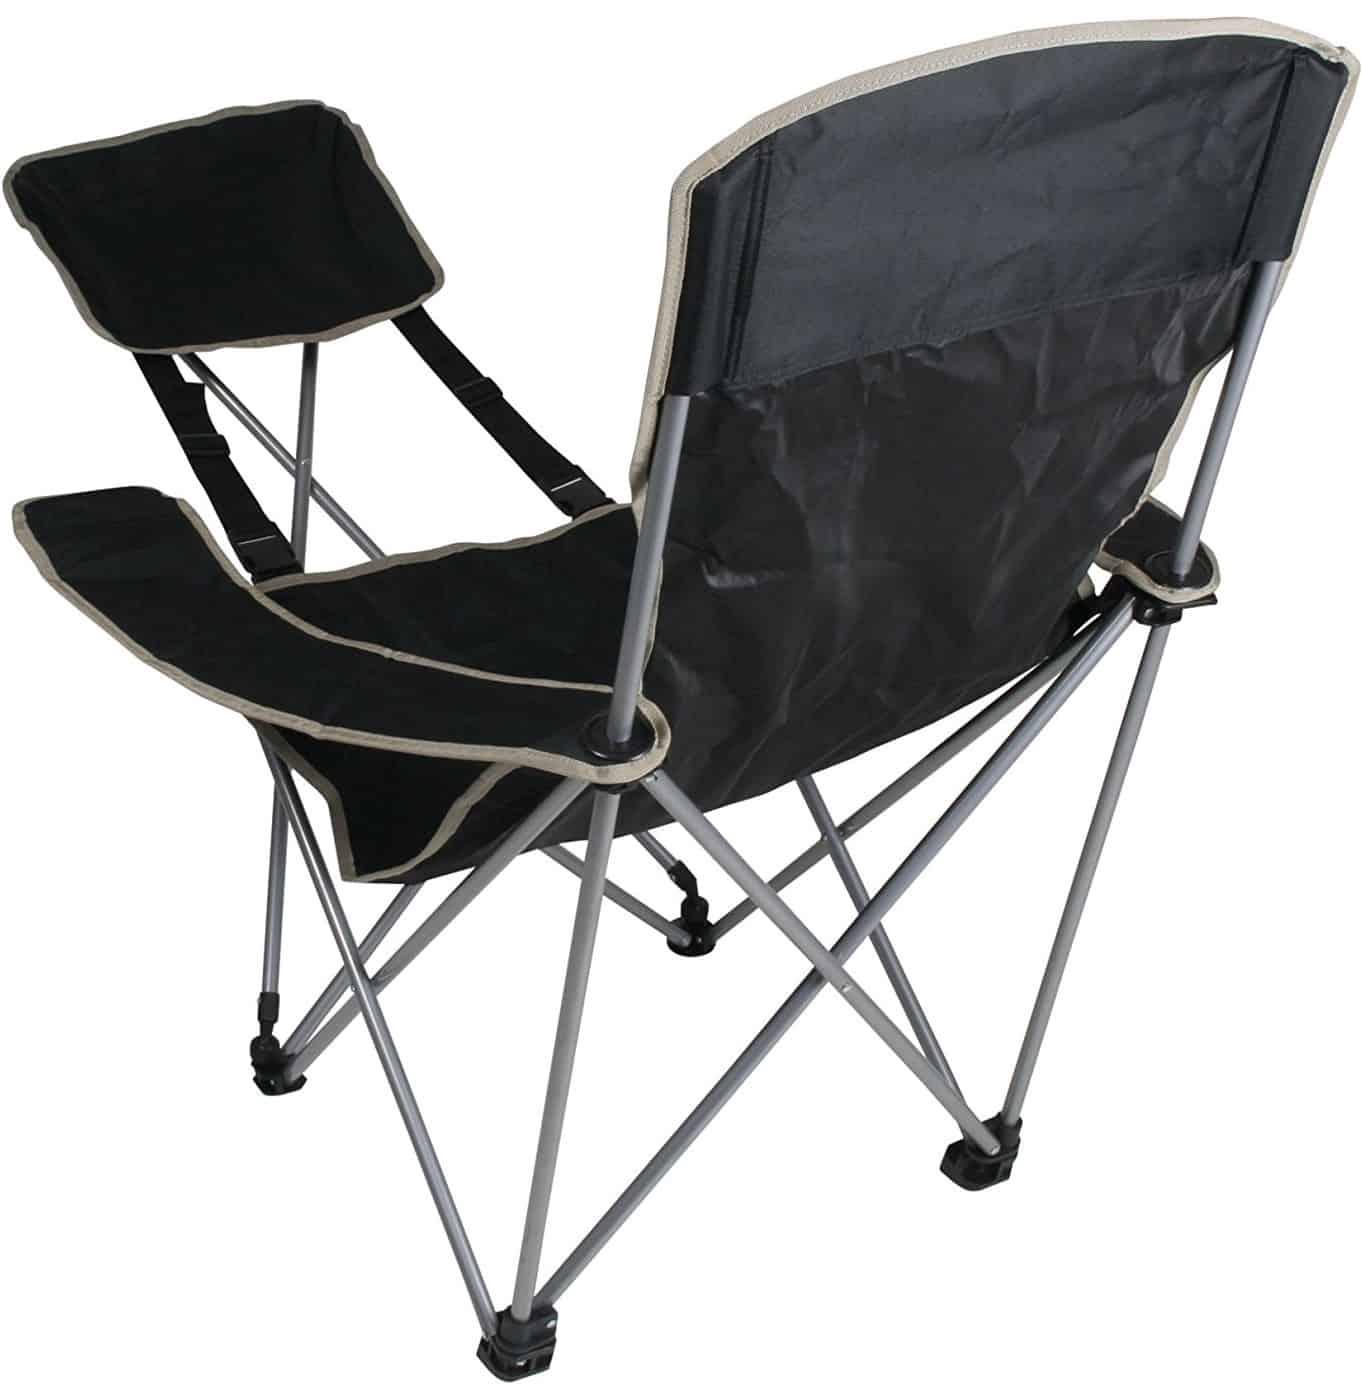 best fishing chair 2017 uk pink kids camping reviews what are the chairs